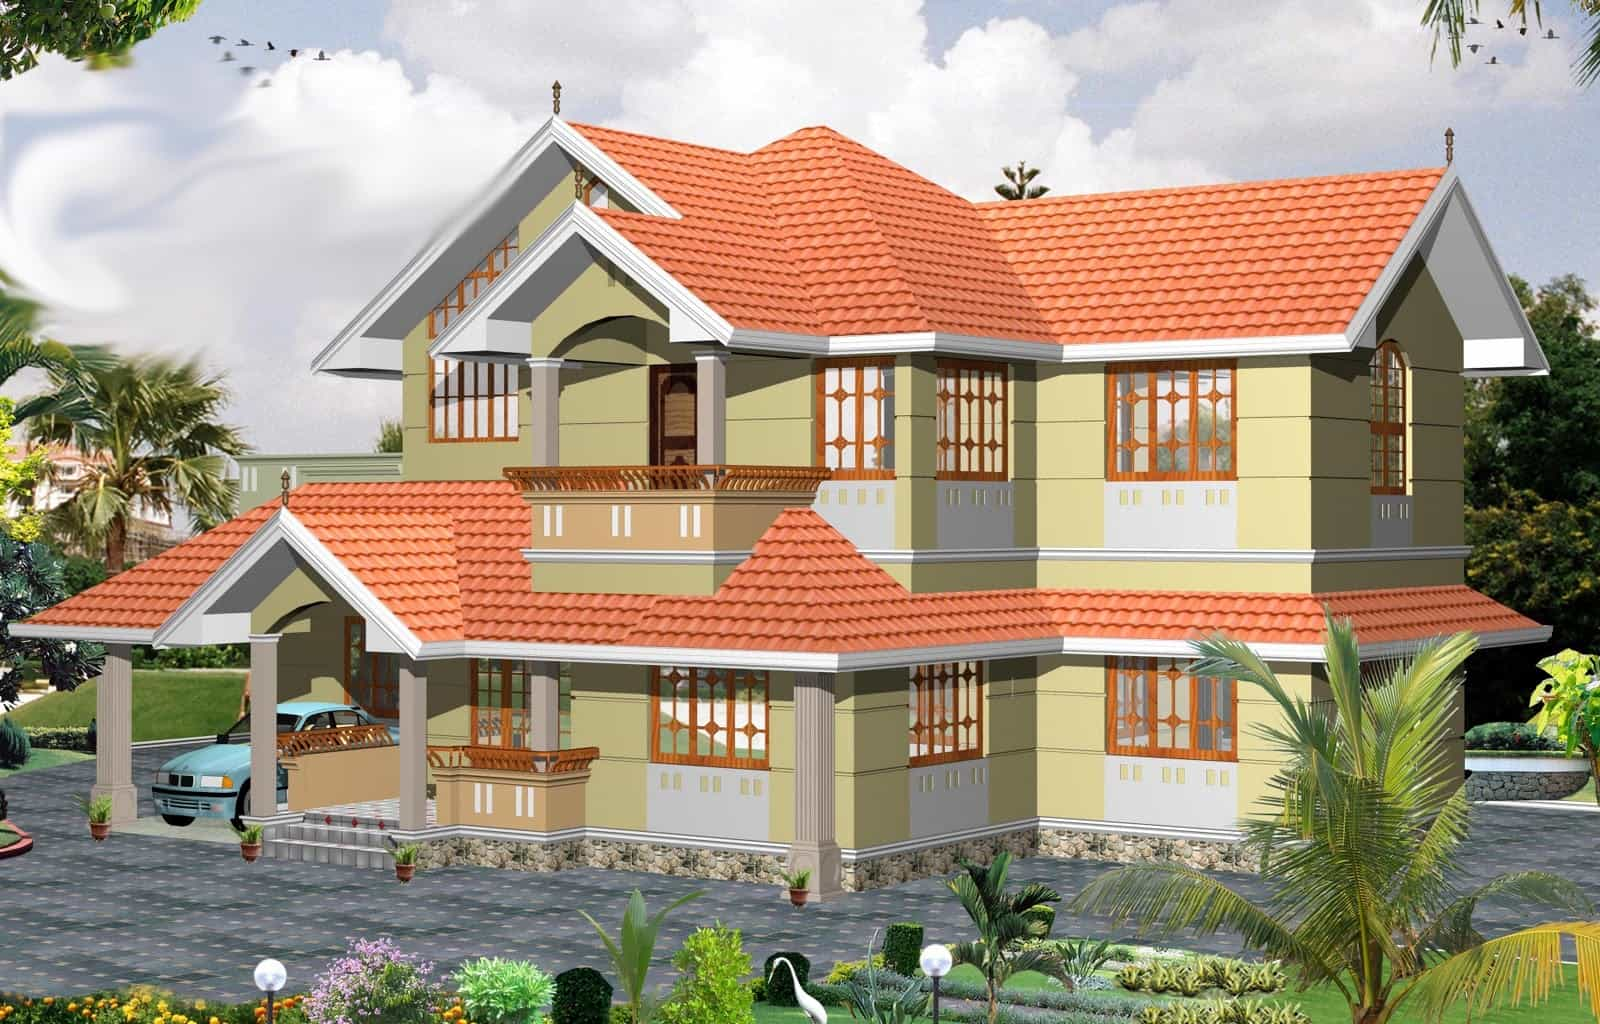 Traditional 3 bhk kerala villa design at 2000 for Best 2000 sq ft home design